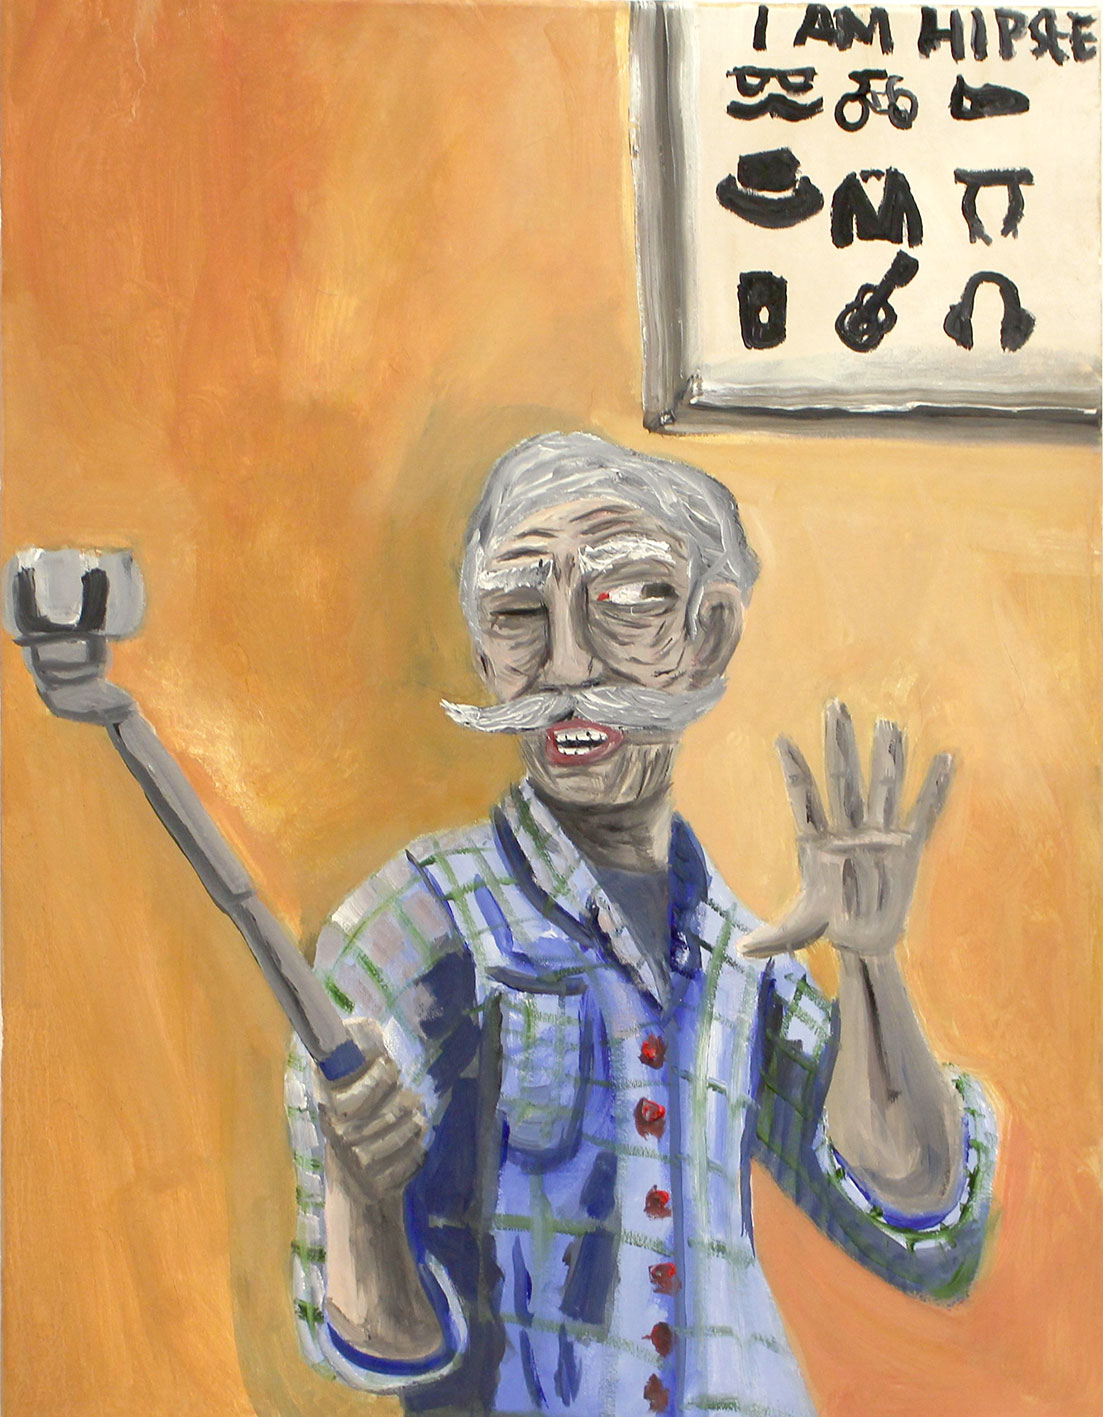 How-much-does-a-hipster-weigh.-an-instagram.-oil-on-canvas.-2016.-50-x-70-cm